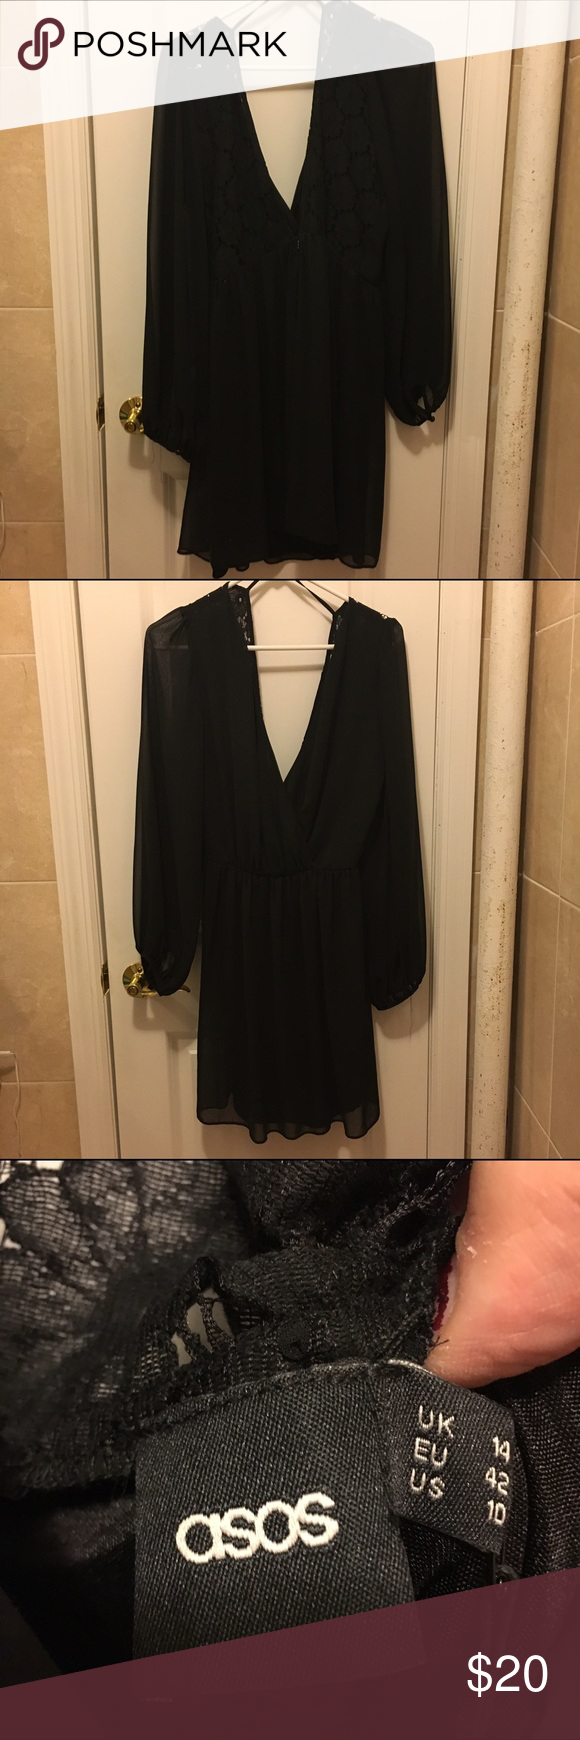 ASOS low cut black skater dress Brand New ASOS Low cut and low back flowing skater dress. Lace work on the back. Invisible closure, billowing sleeves. Great for a night out! ⭐️Fast Shipper🏃🏻♀️✔️⭐️Ask Me A Question/make me an offer⁉️✔️⭐️ ASOS Dresses Mini